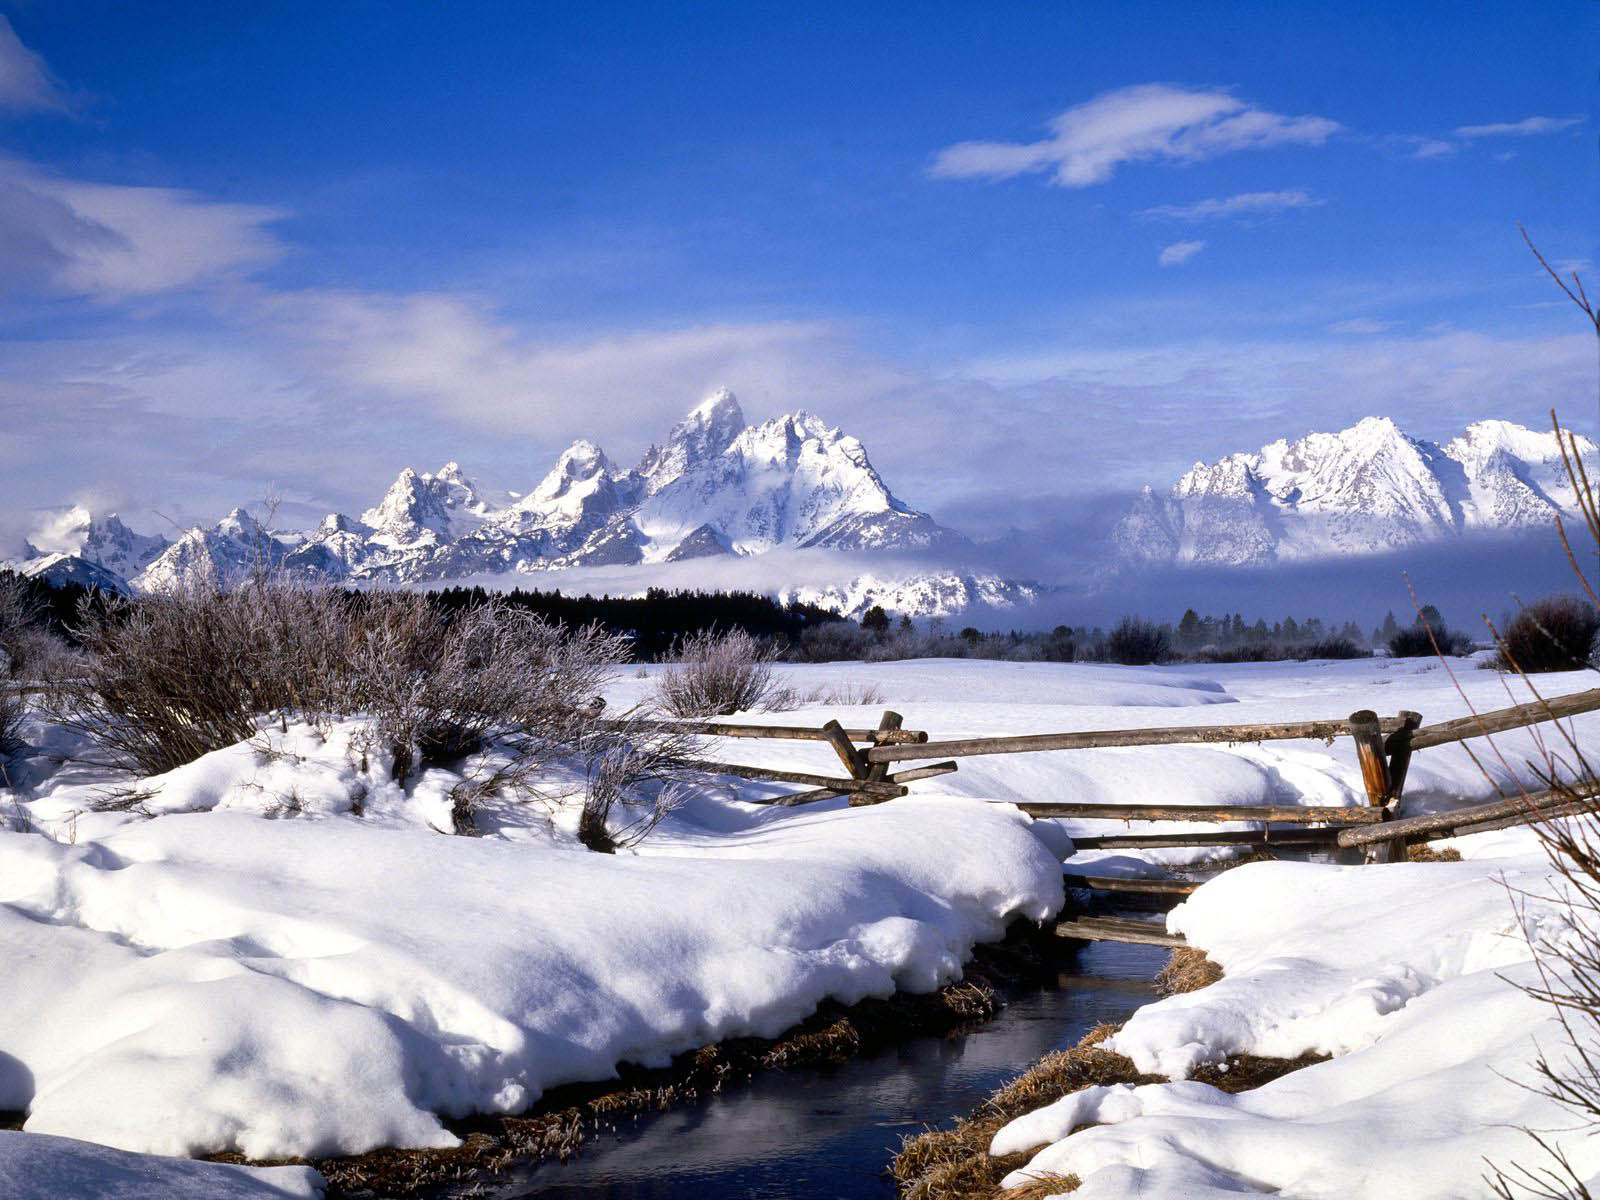 Tag: Snow Wallpapers, Backgrounds, Photos, Pictures,and Images for